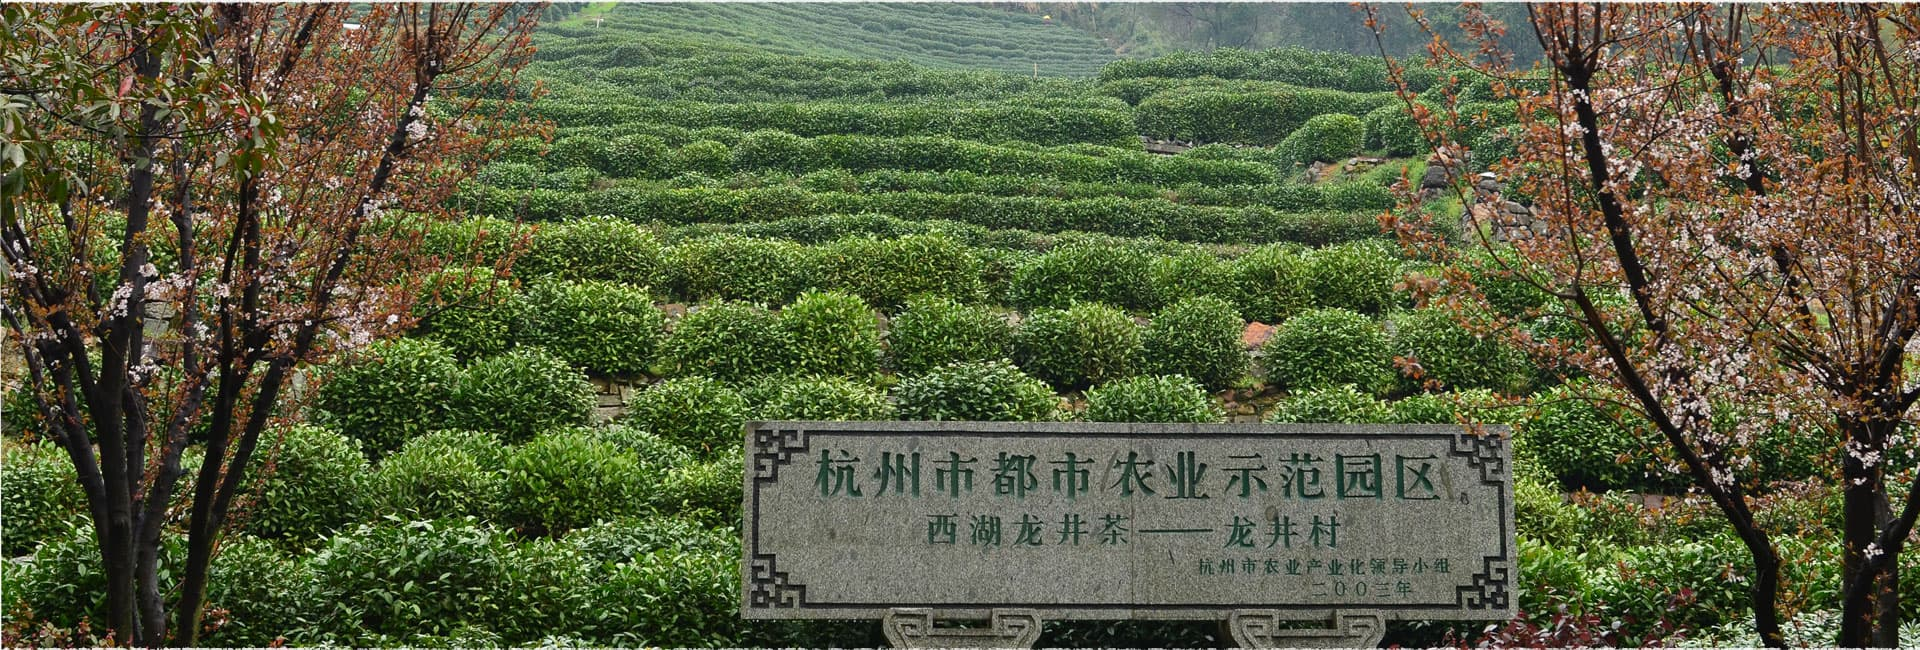 Longjing Village Tea Garden